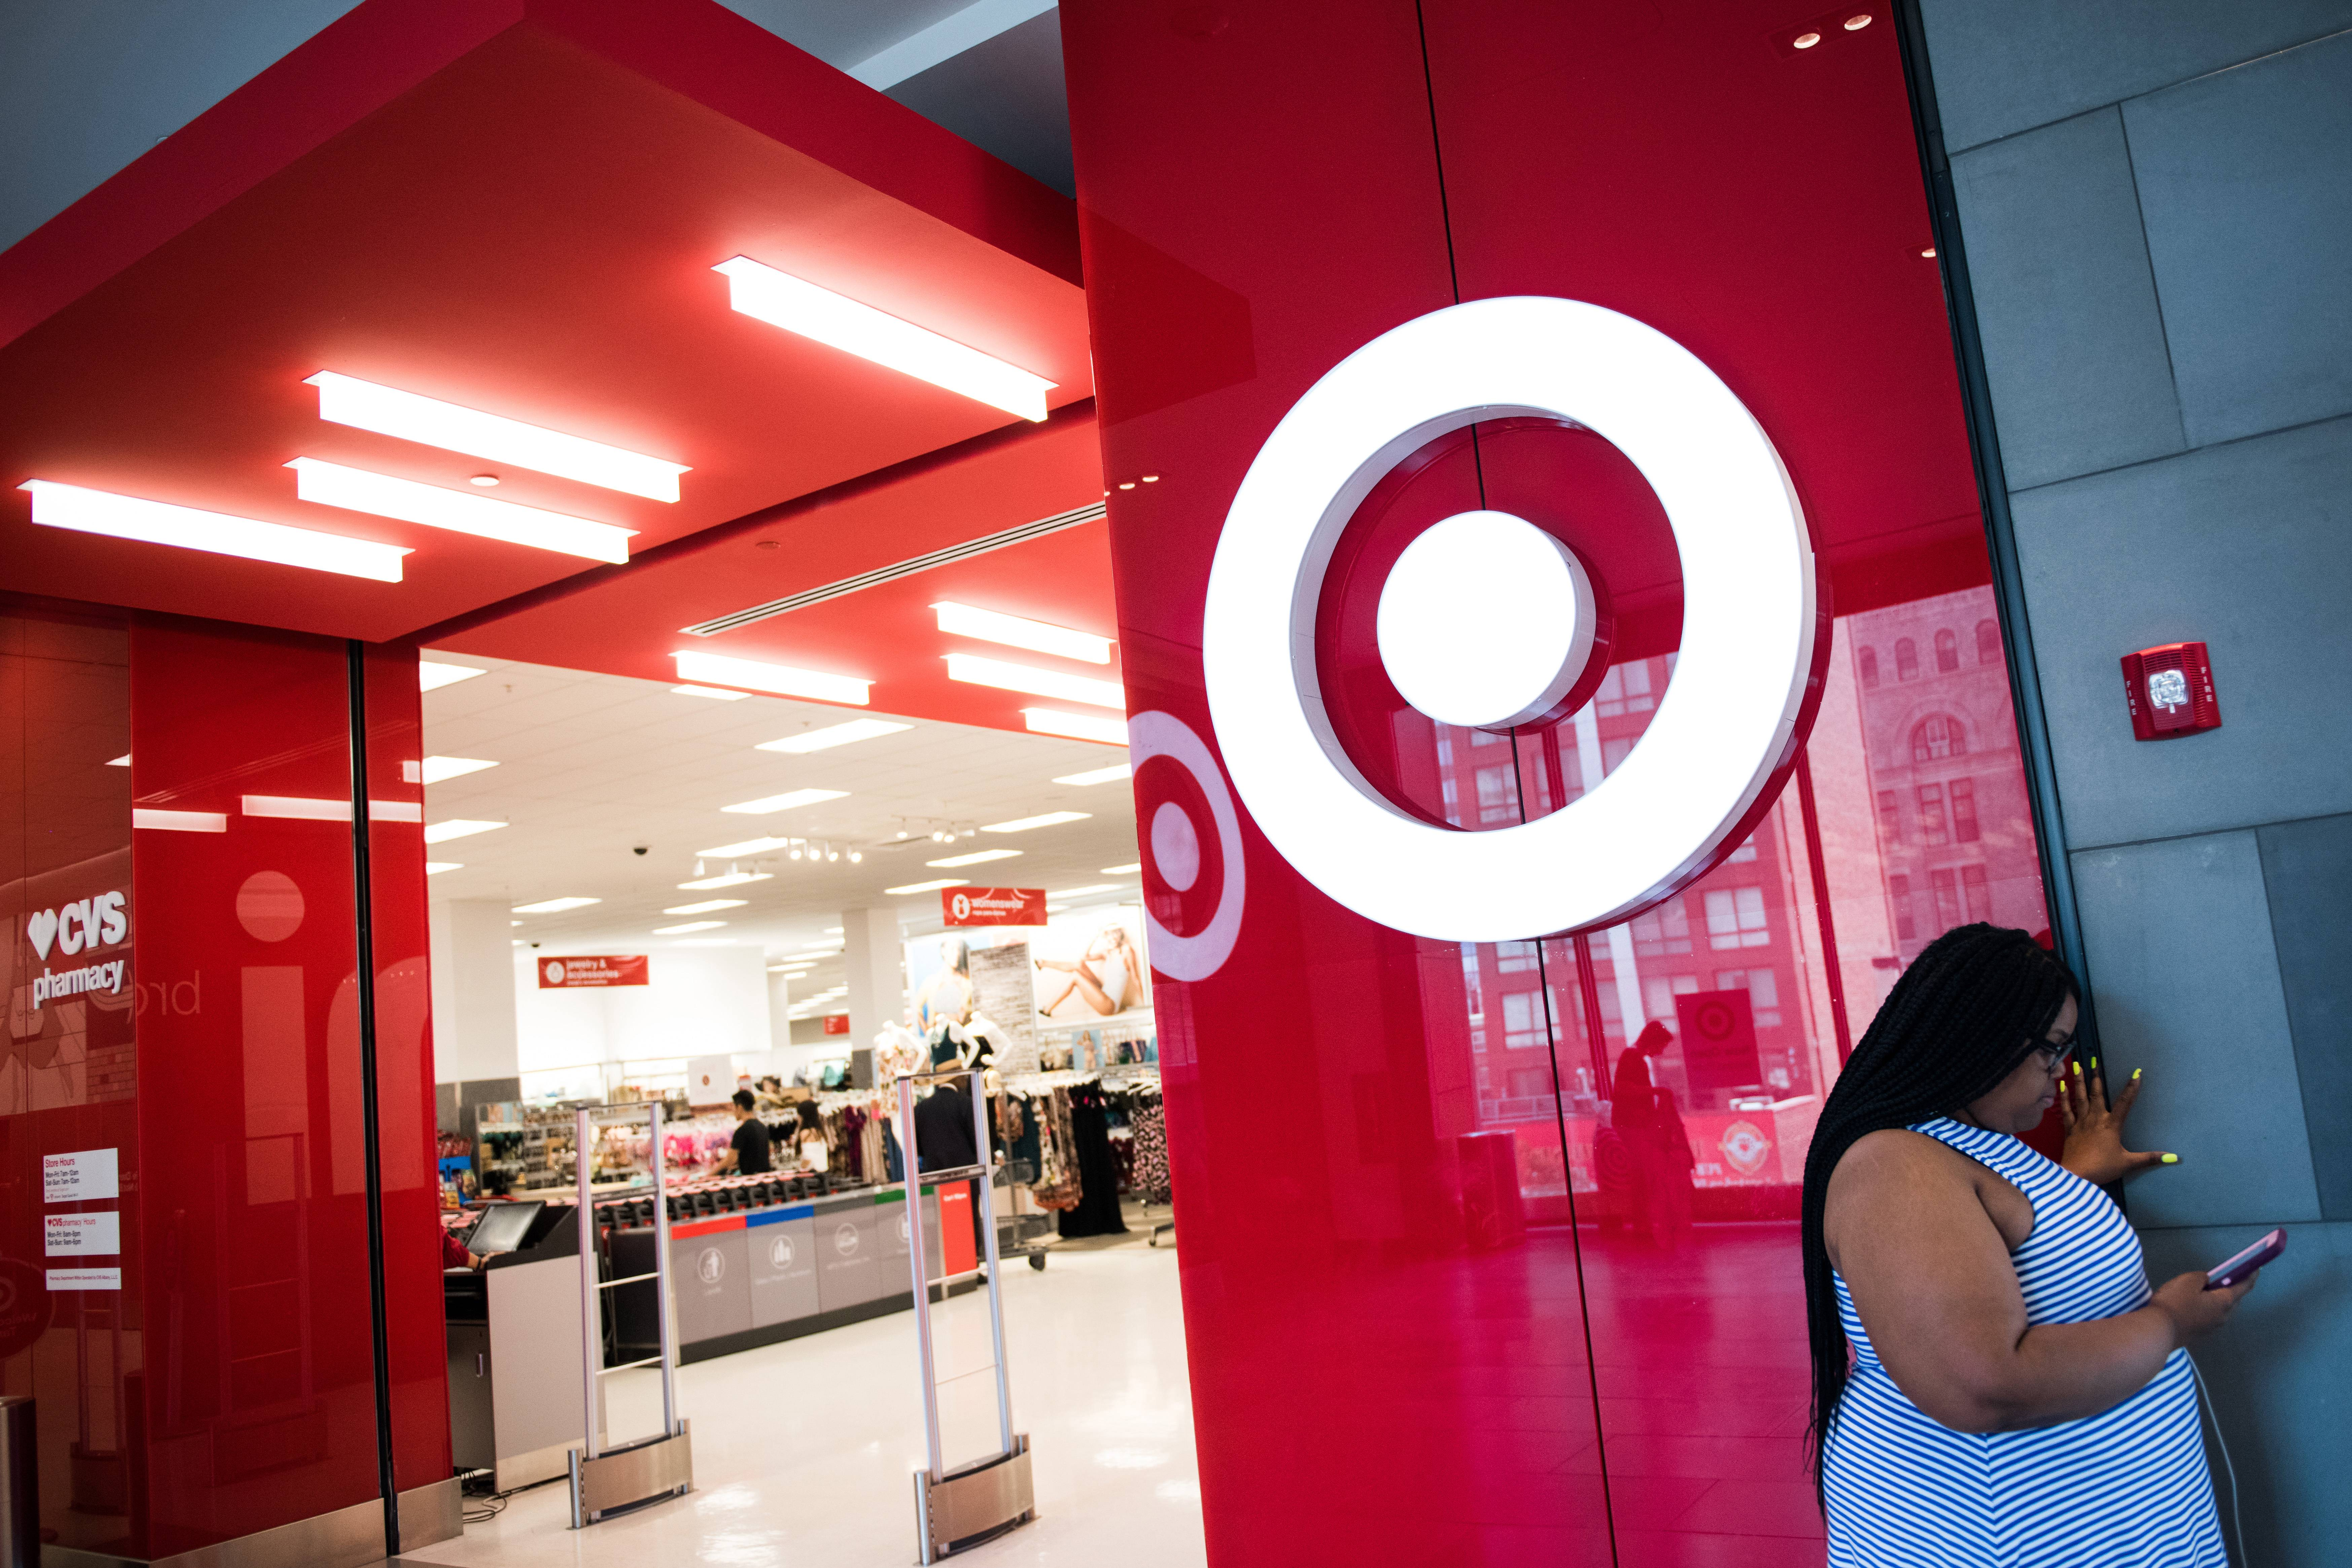 A woman checks her phone outside a Target store in New York on July 18, 2017.